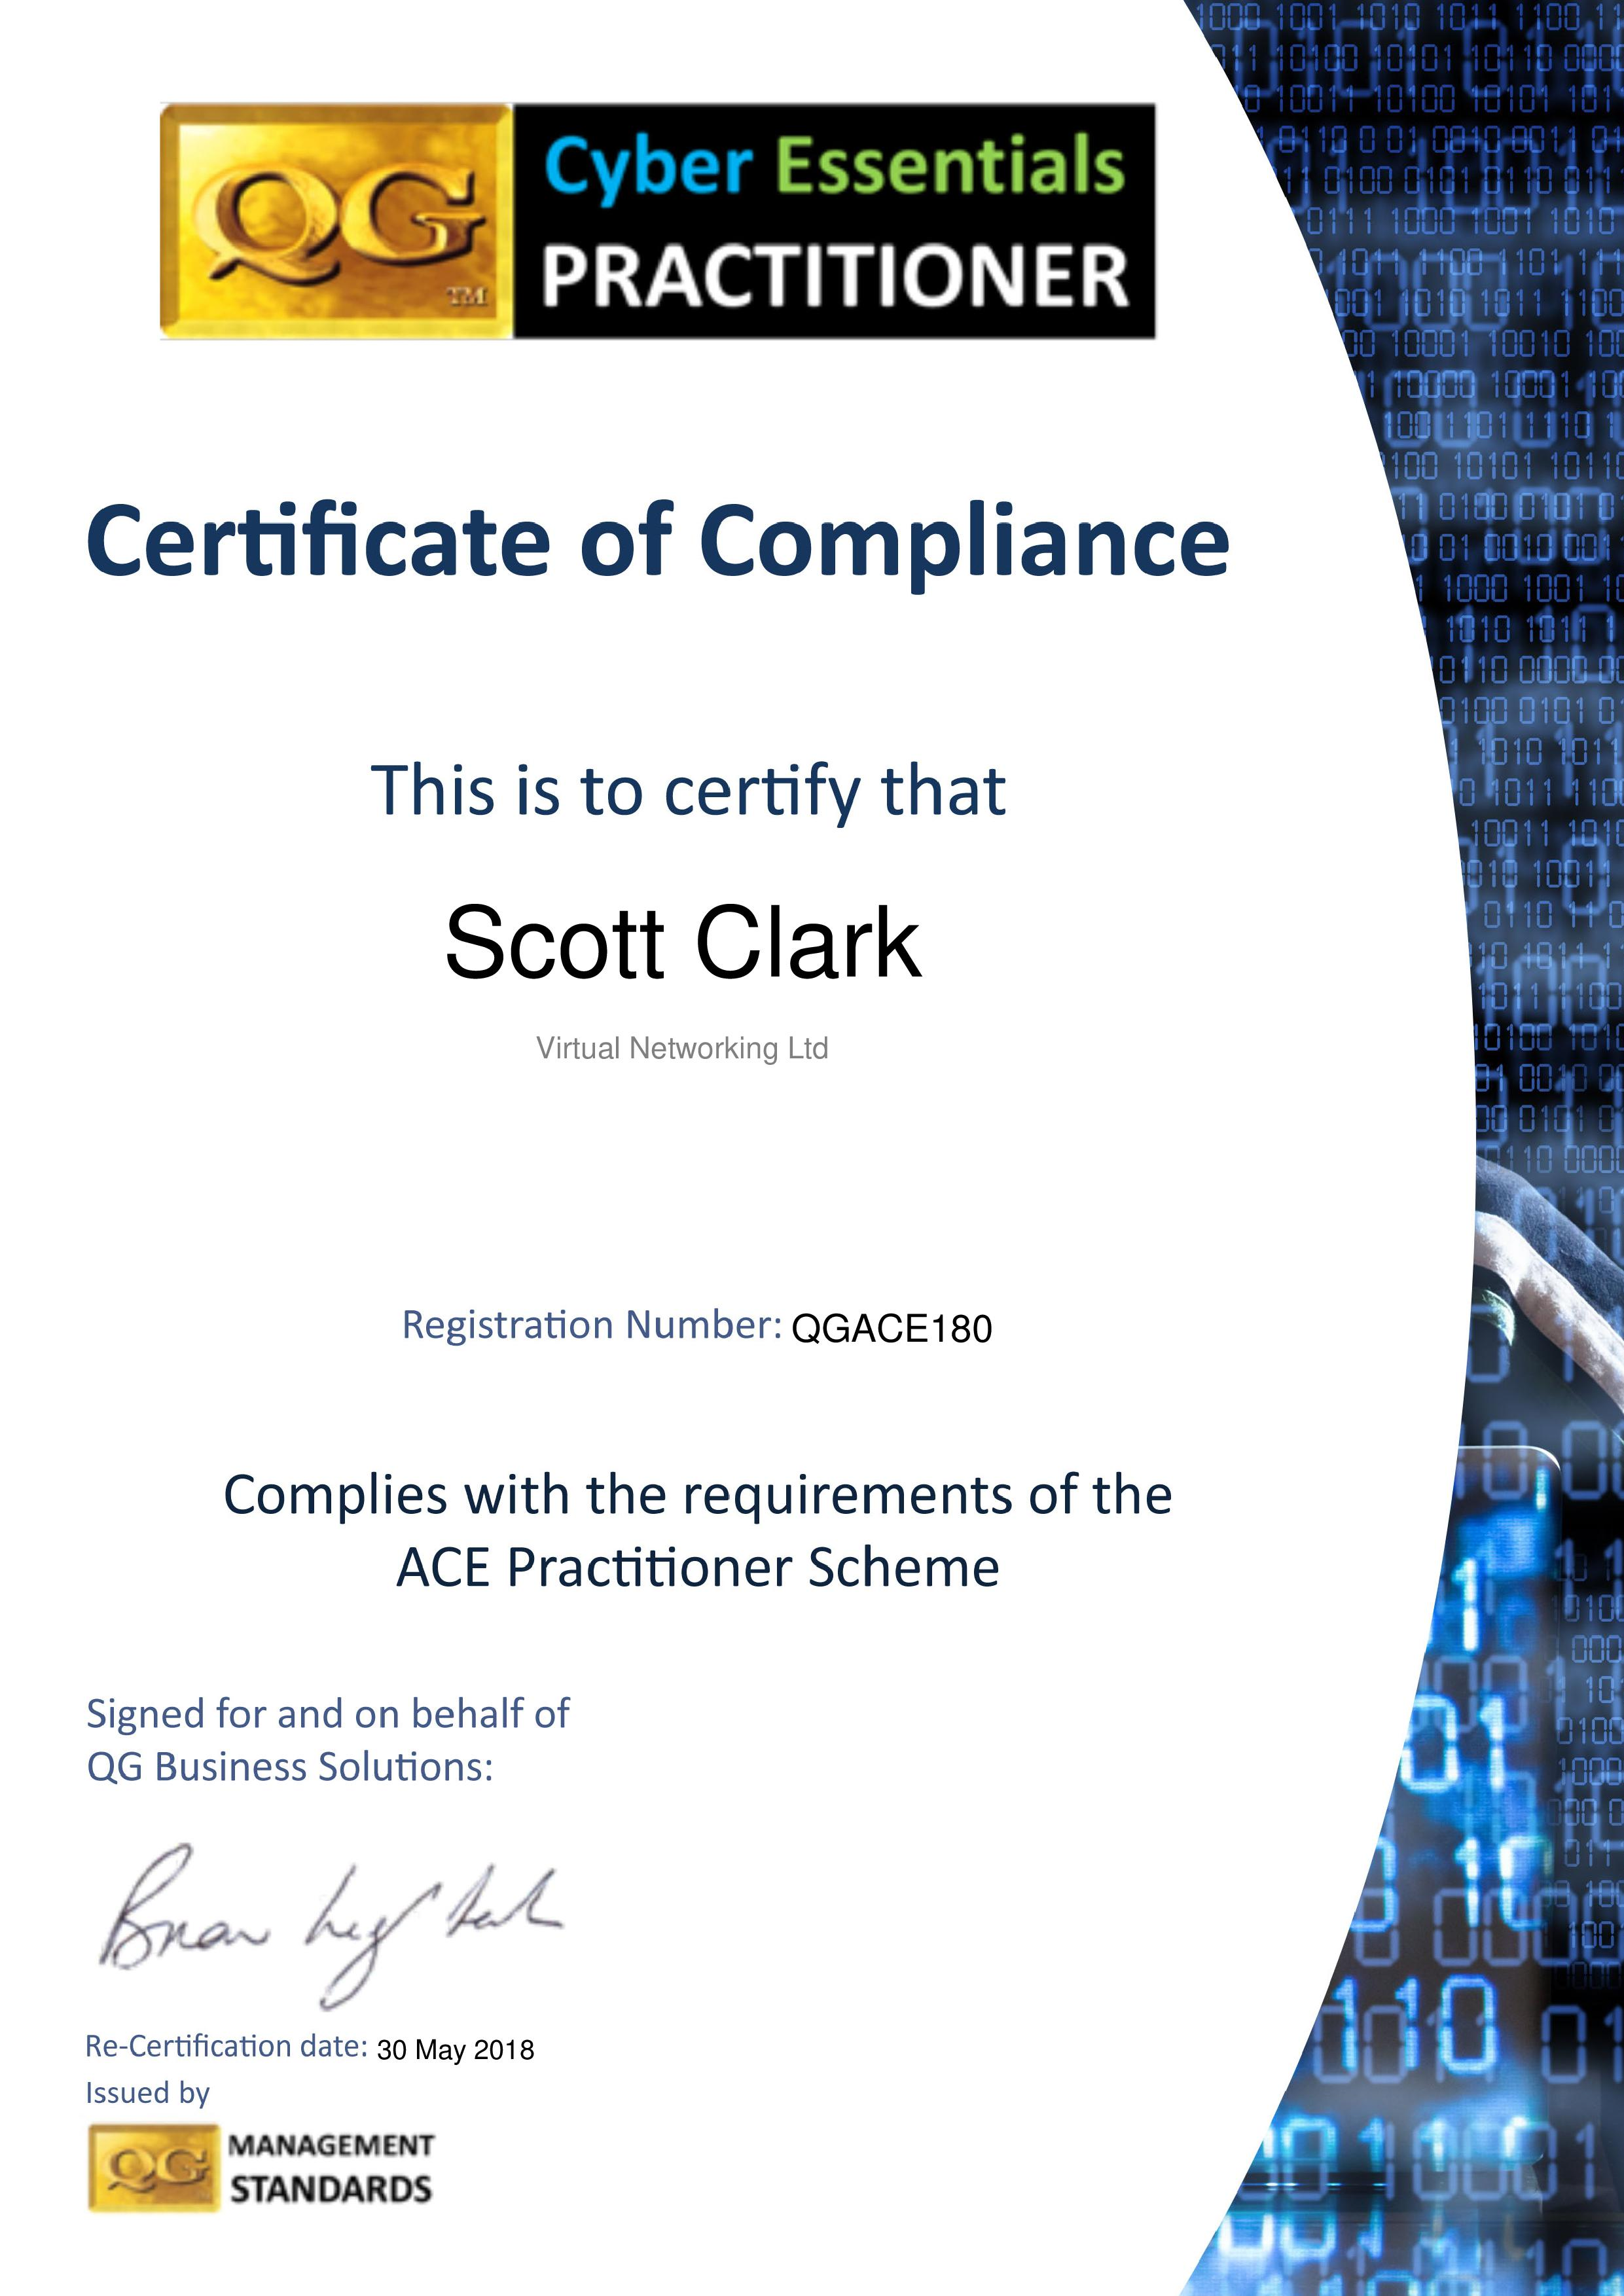 QGACE180 Virtual Networking Ltd